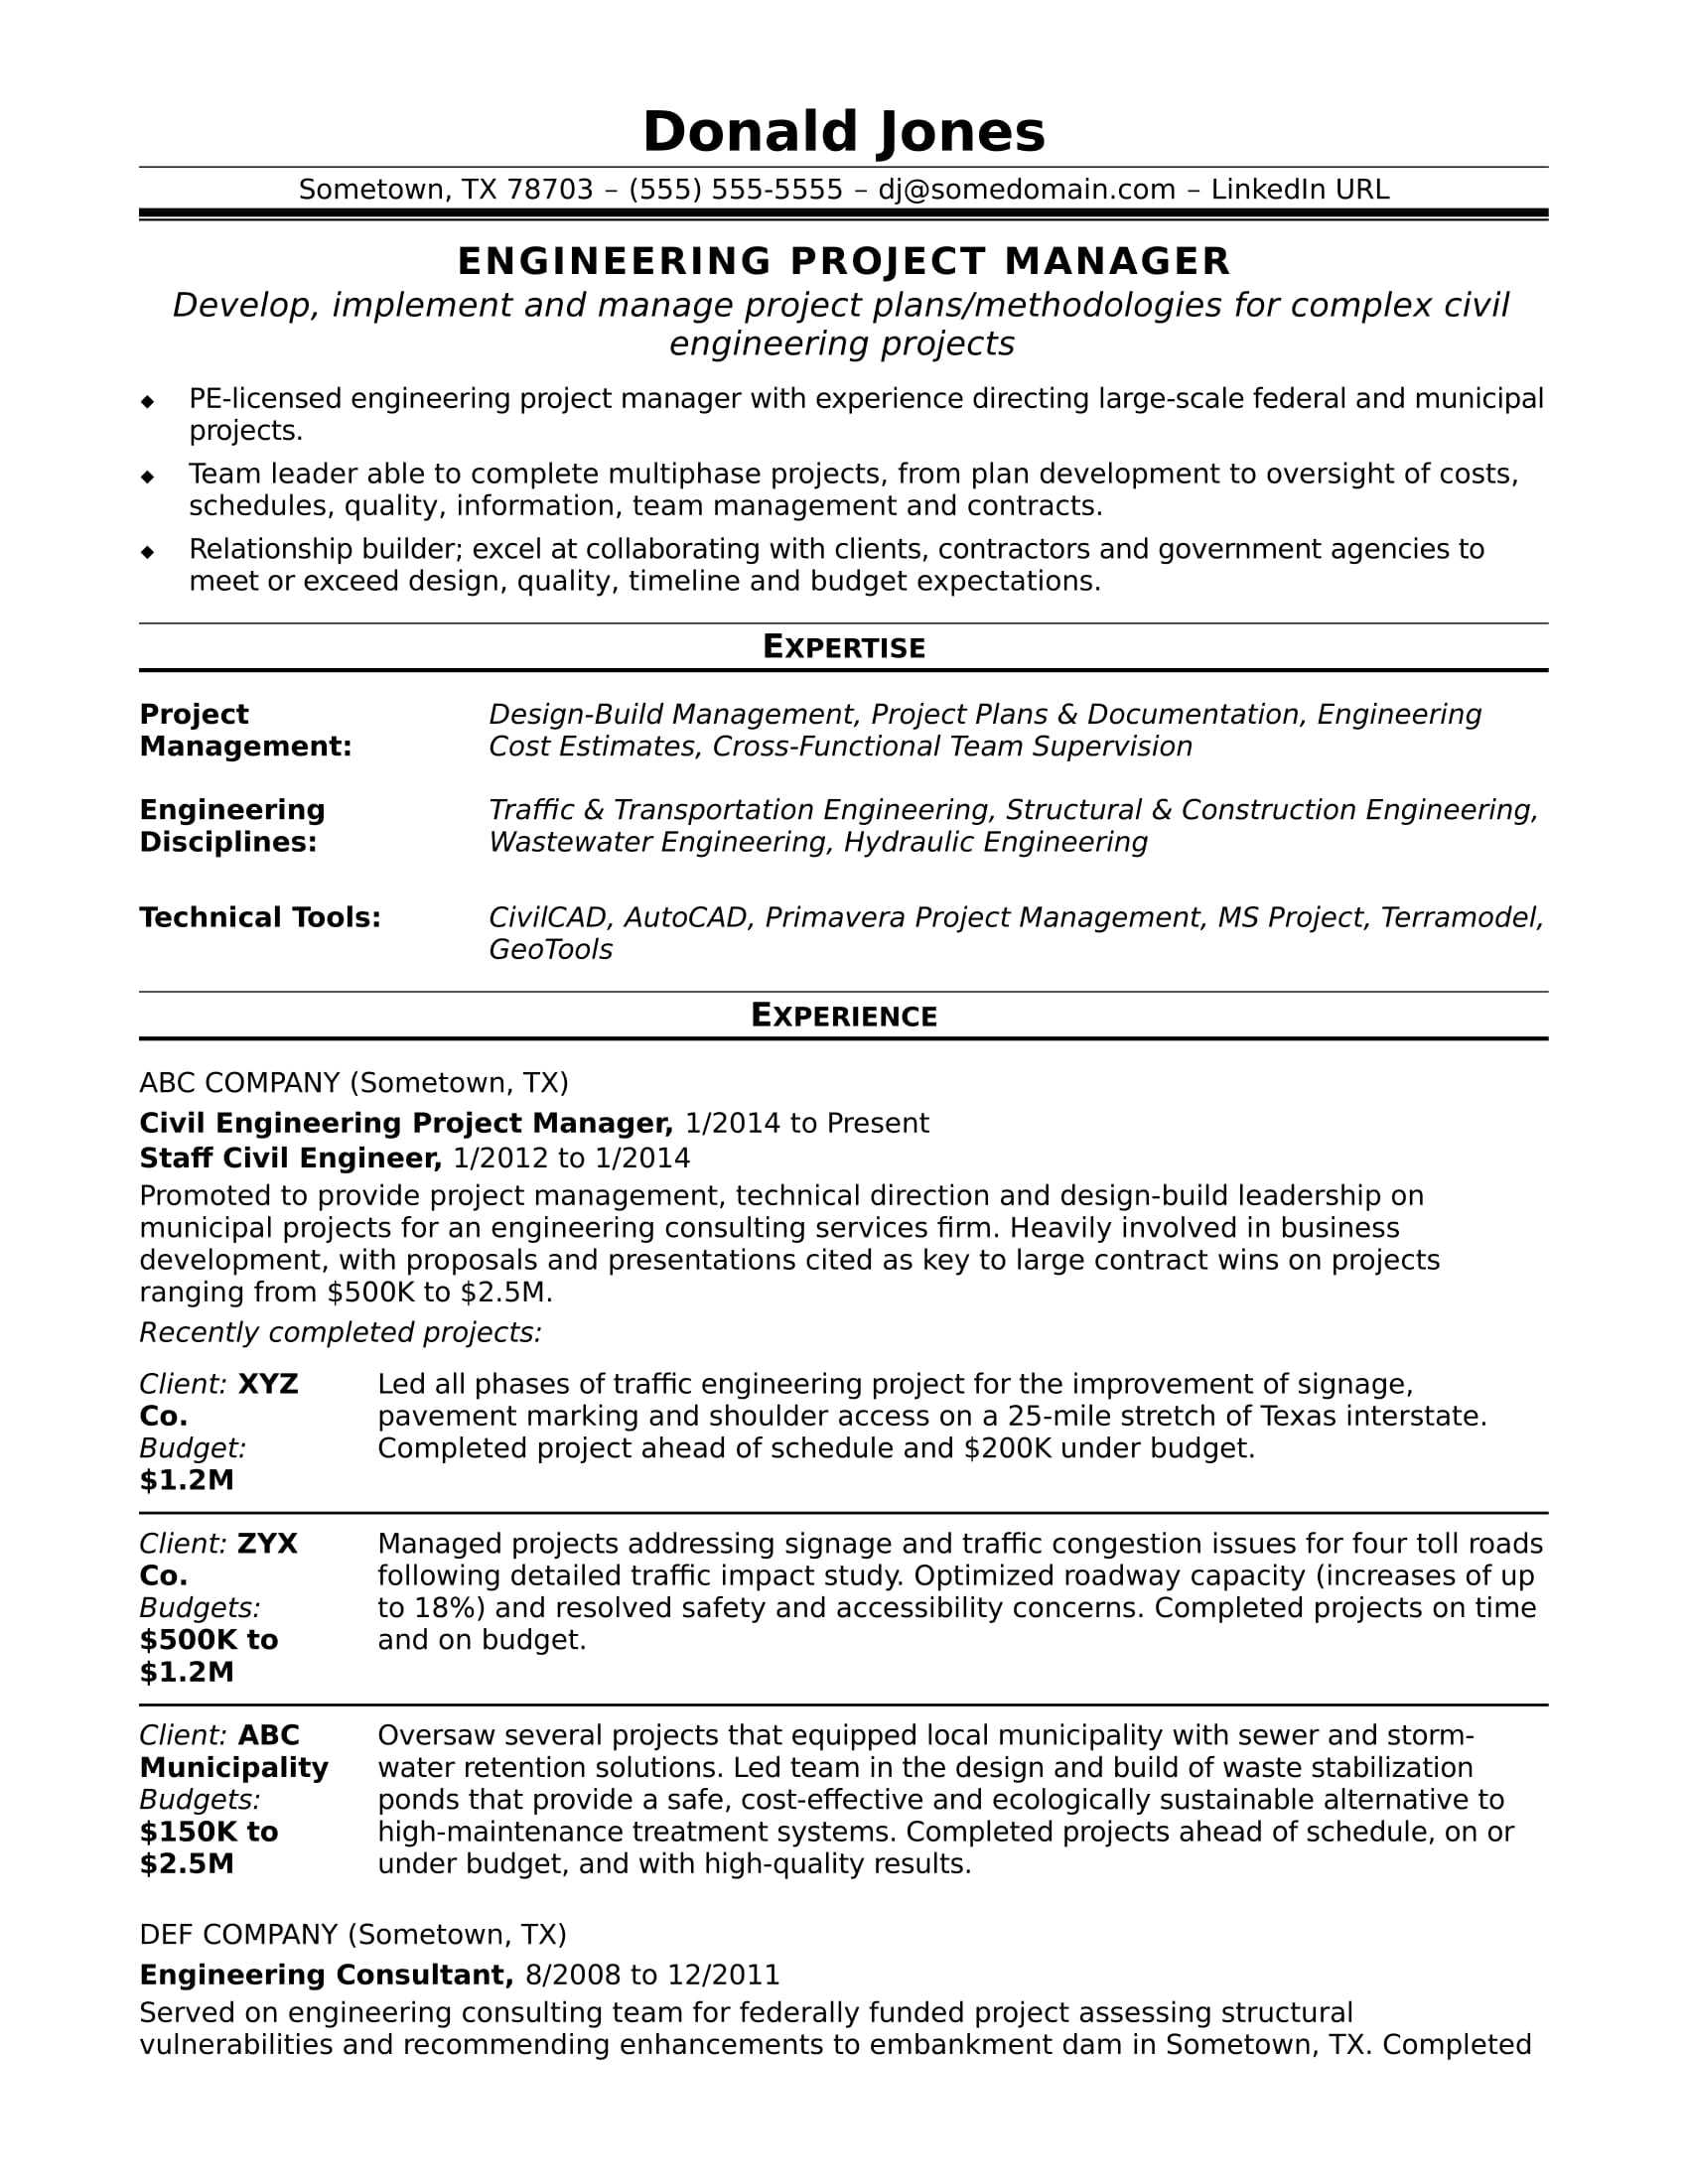 sample resume for a midlevel engineering project manager - Sample Resume Of Engineering Project Manager